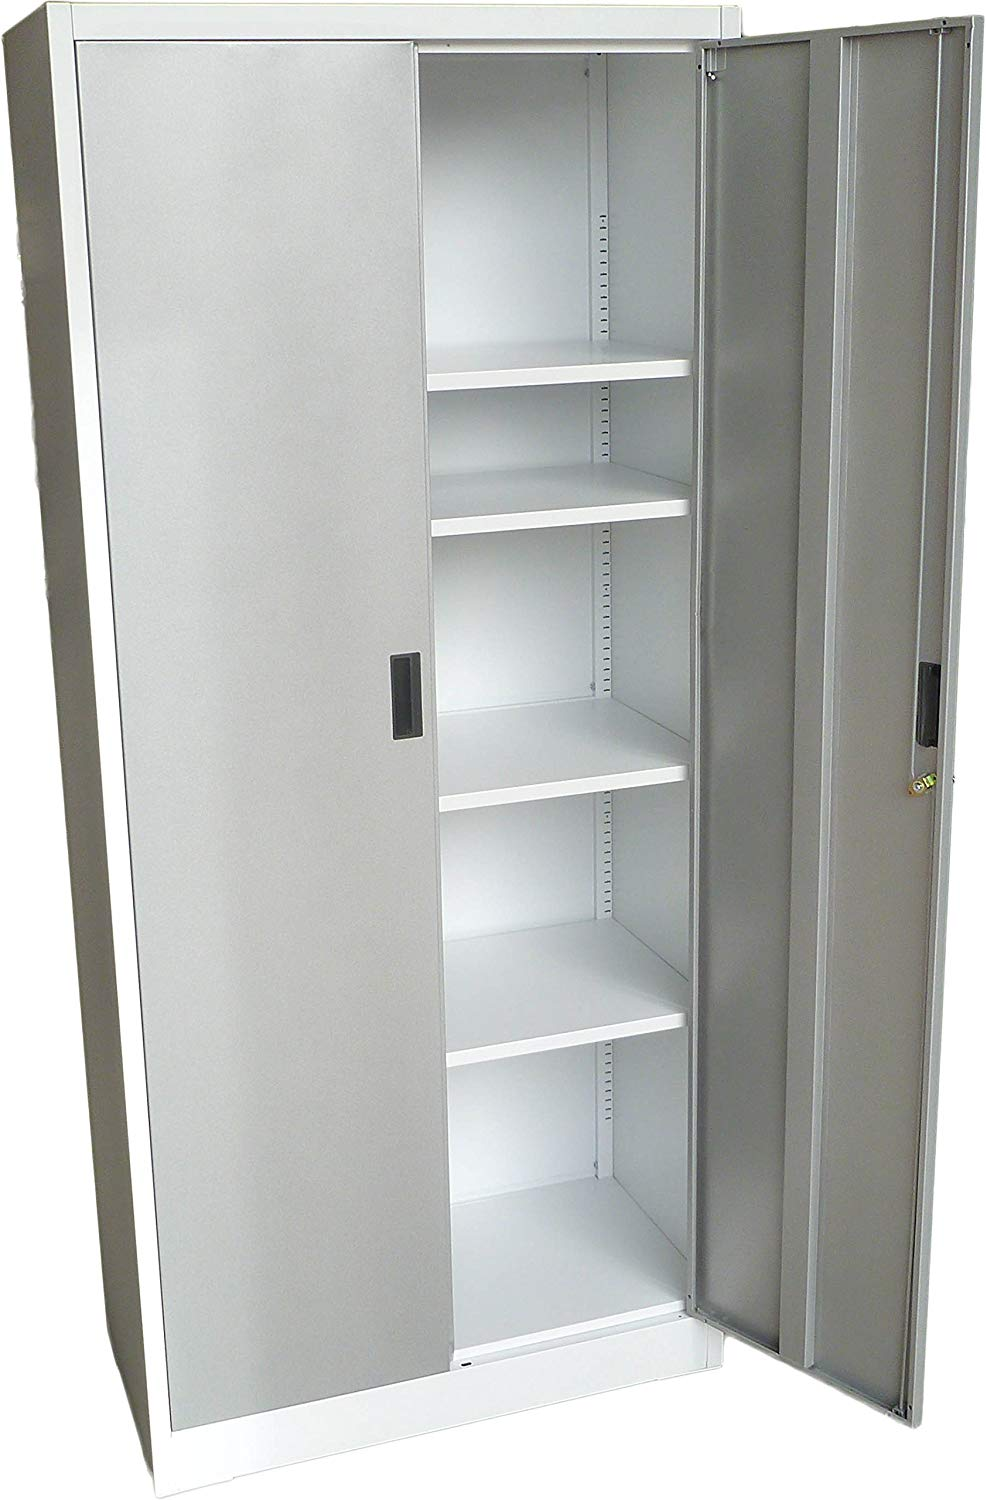 "Steel Storage Cabinet 71"" Tall with Lockable Doors and Adjustable Shelves, (Choose Color) 70.86"" Tall x 31.5""W x 15.75""D, by Fedmax."